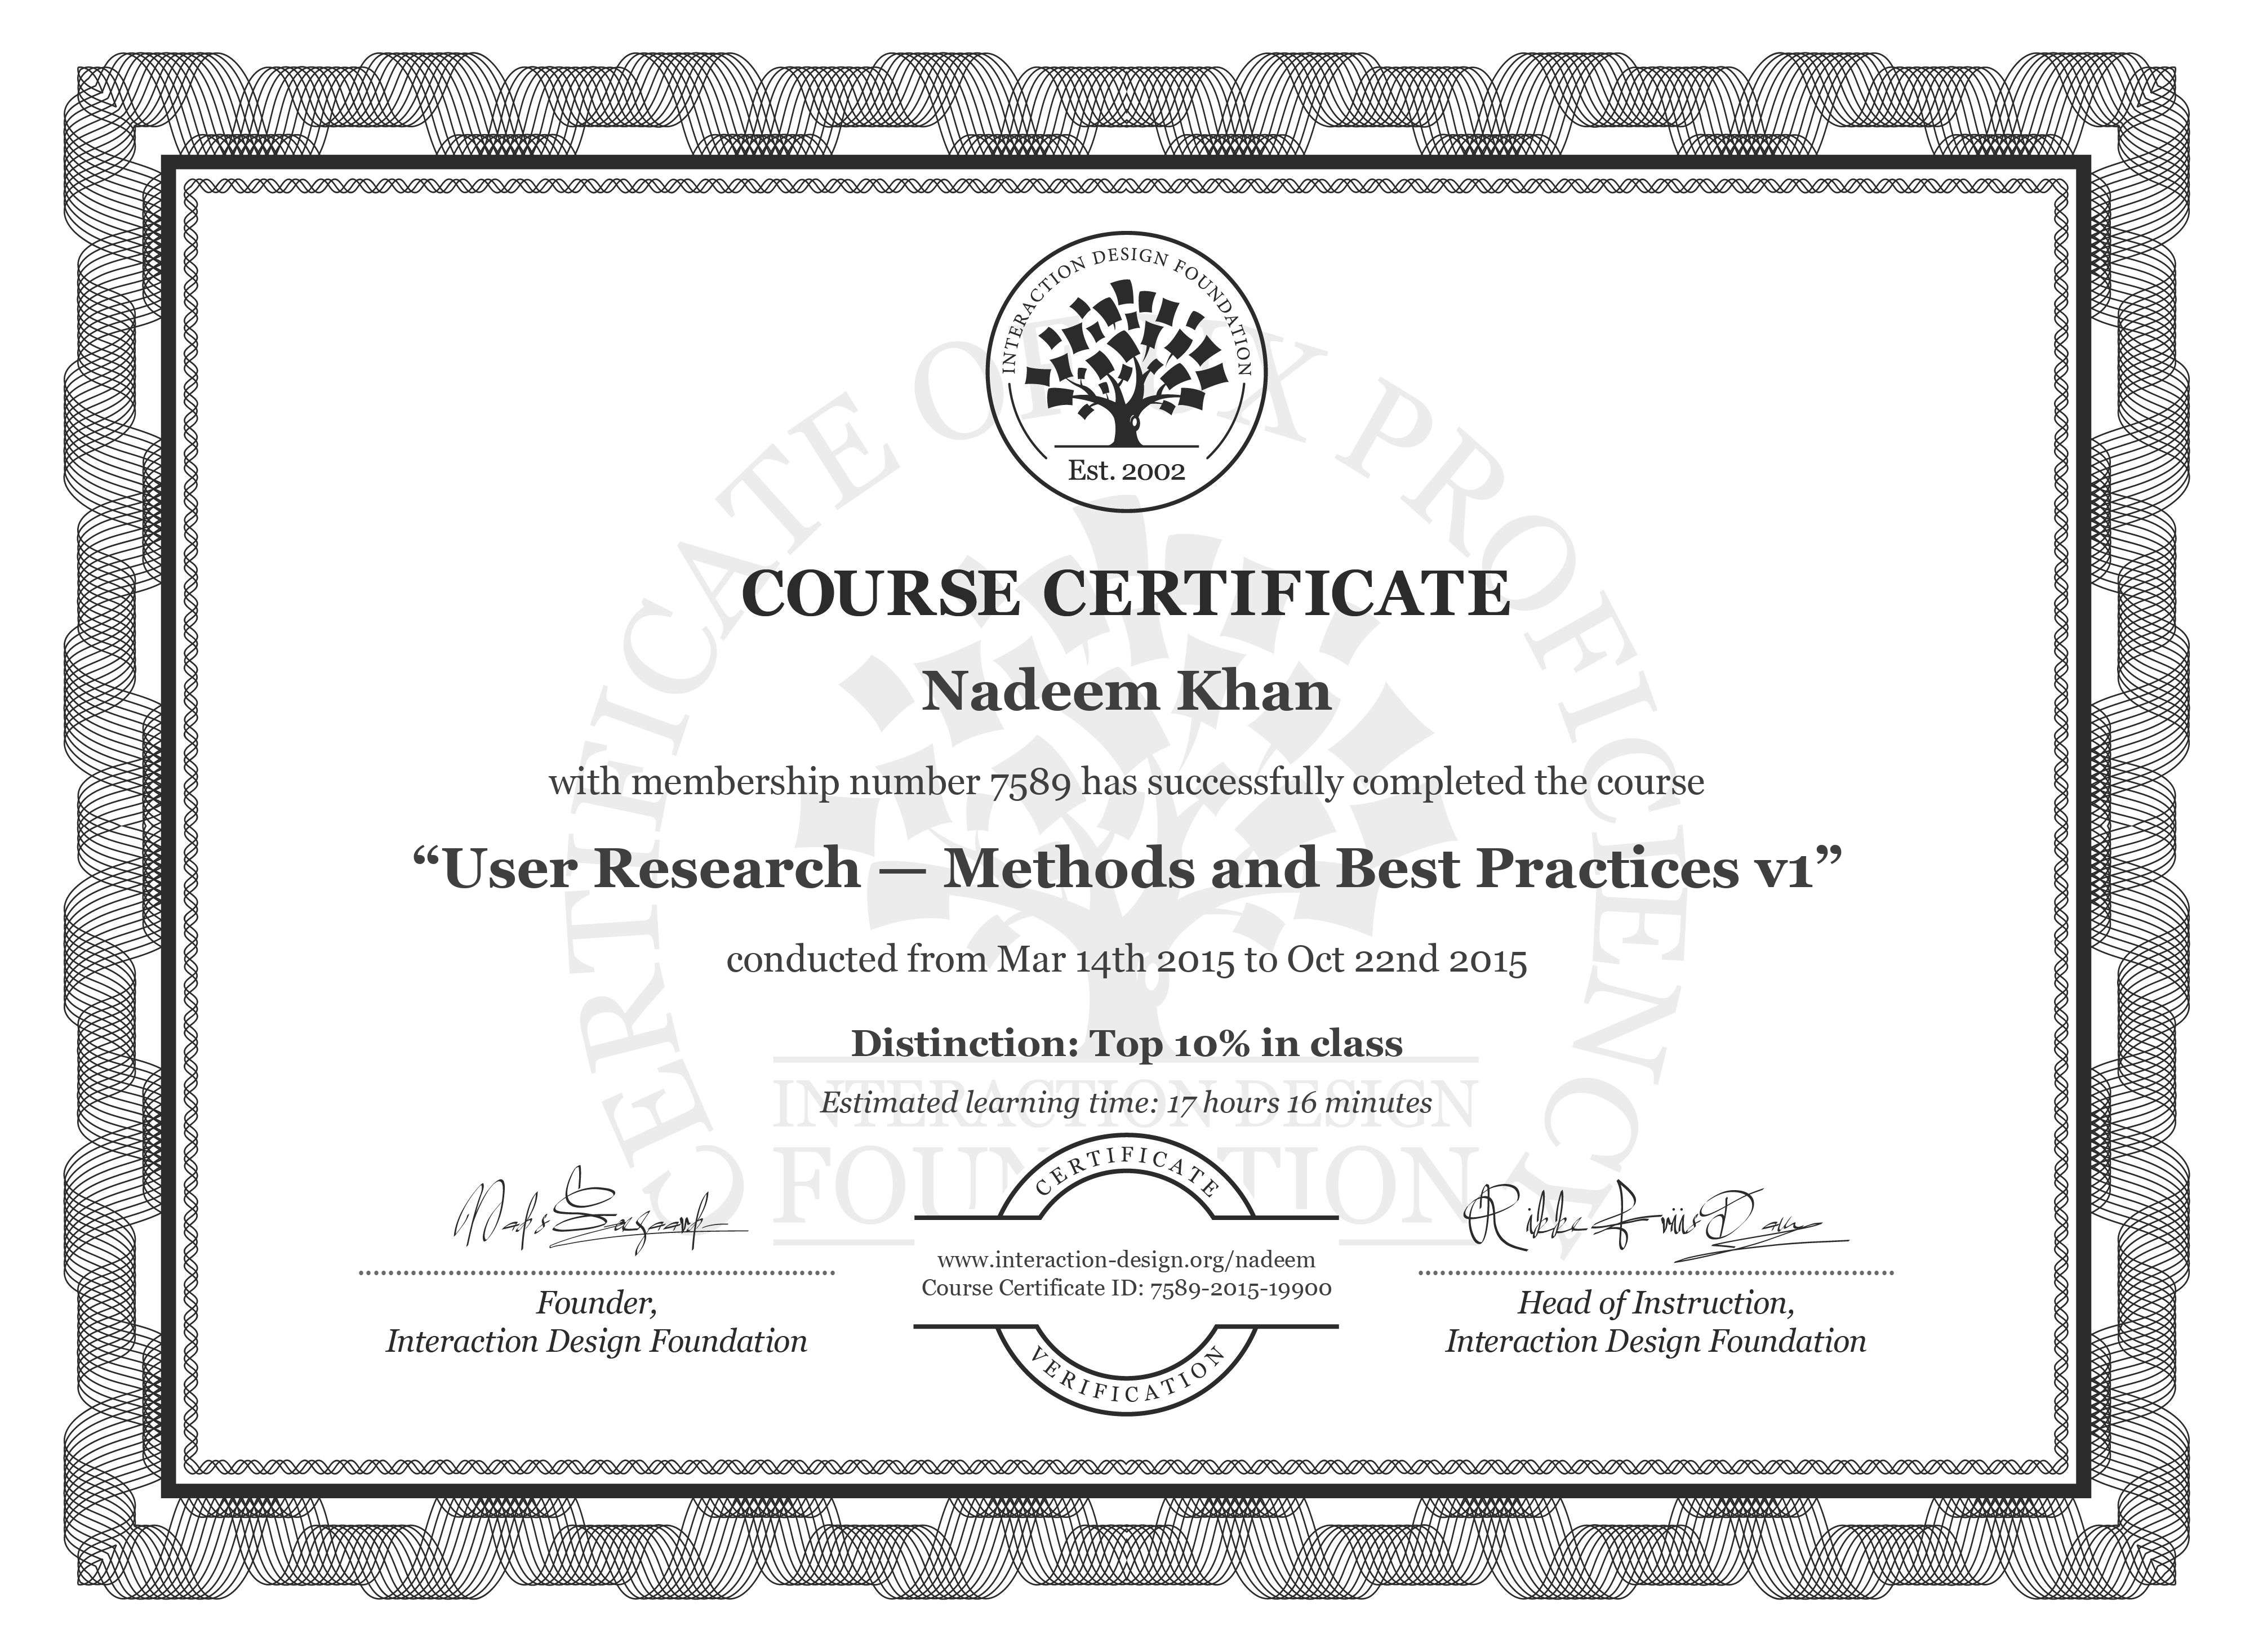 Nadeem Khan's Course Certificate: User Research — Methods and Best Practices